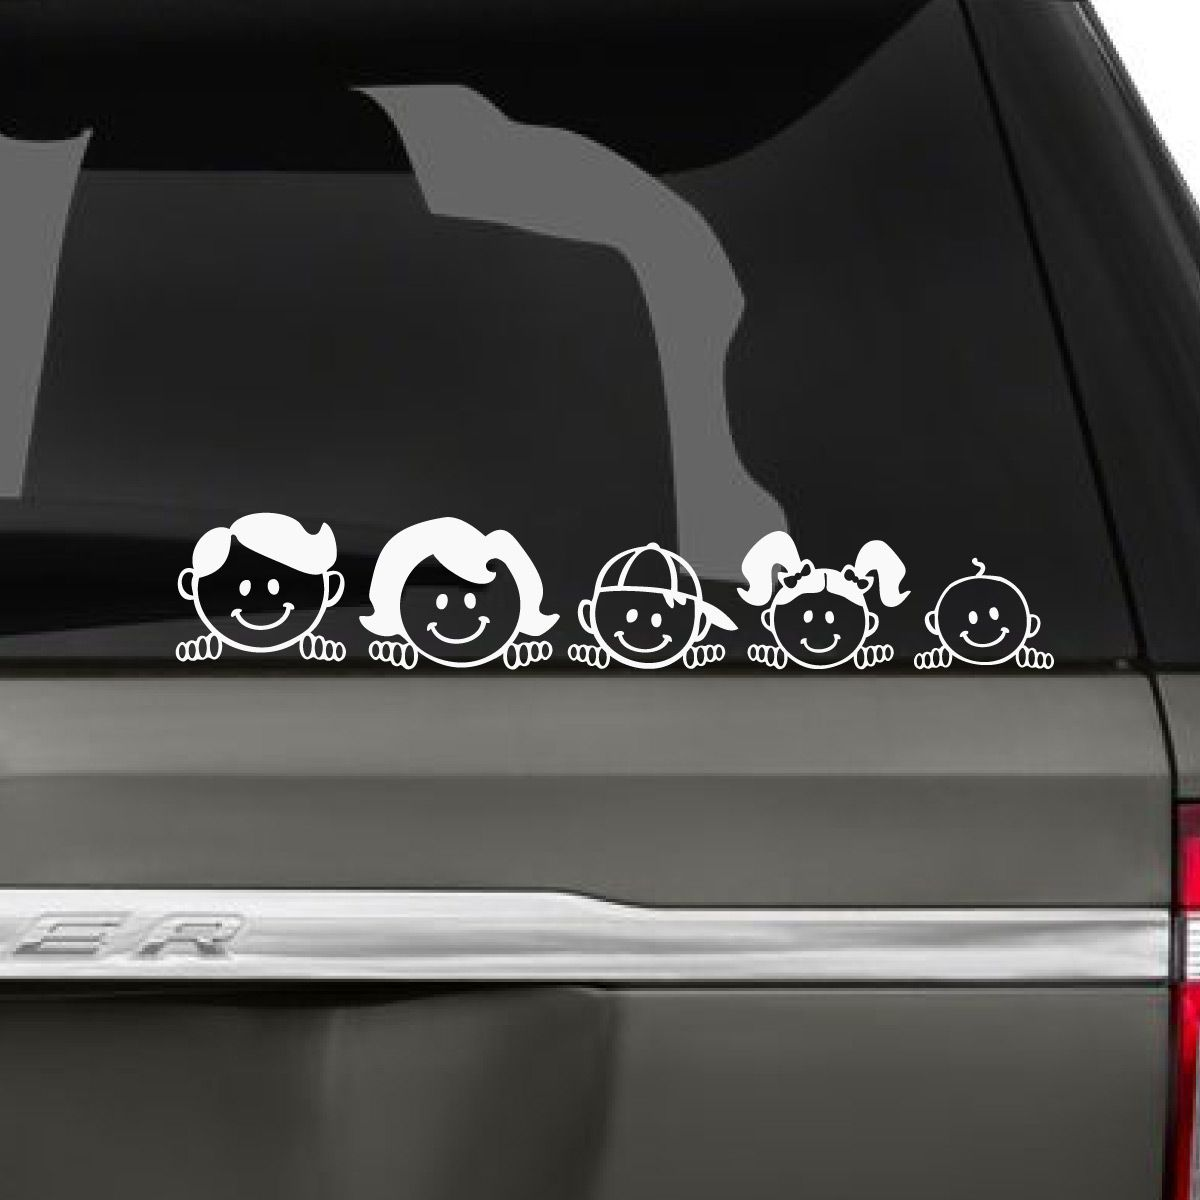 Peeping Family Car Decal Family Car Stickers Family Car Decals Family Car [ 1200 x 1200 Pixel ]